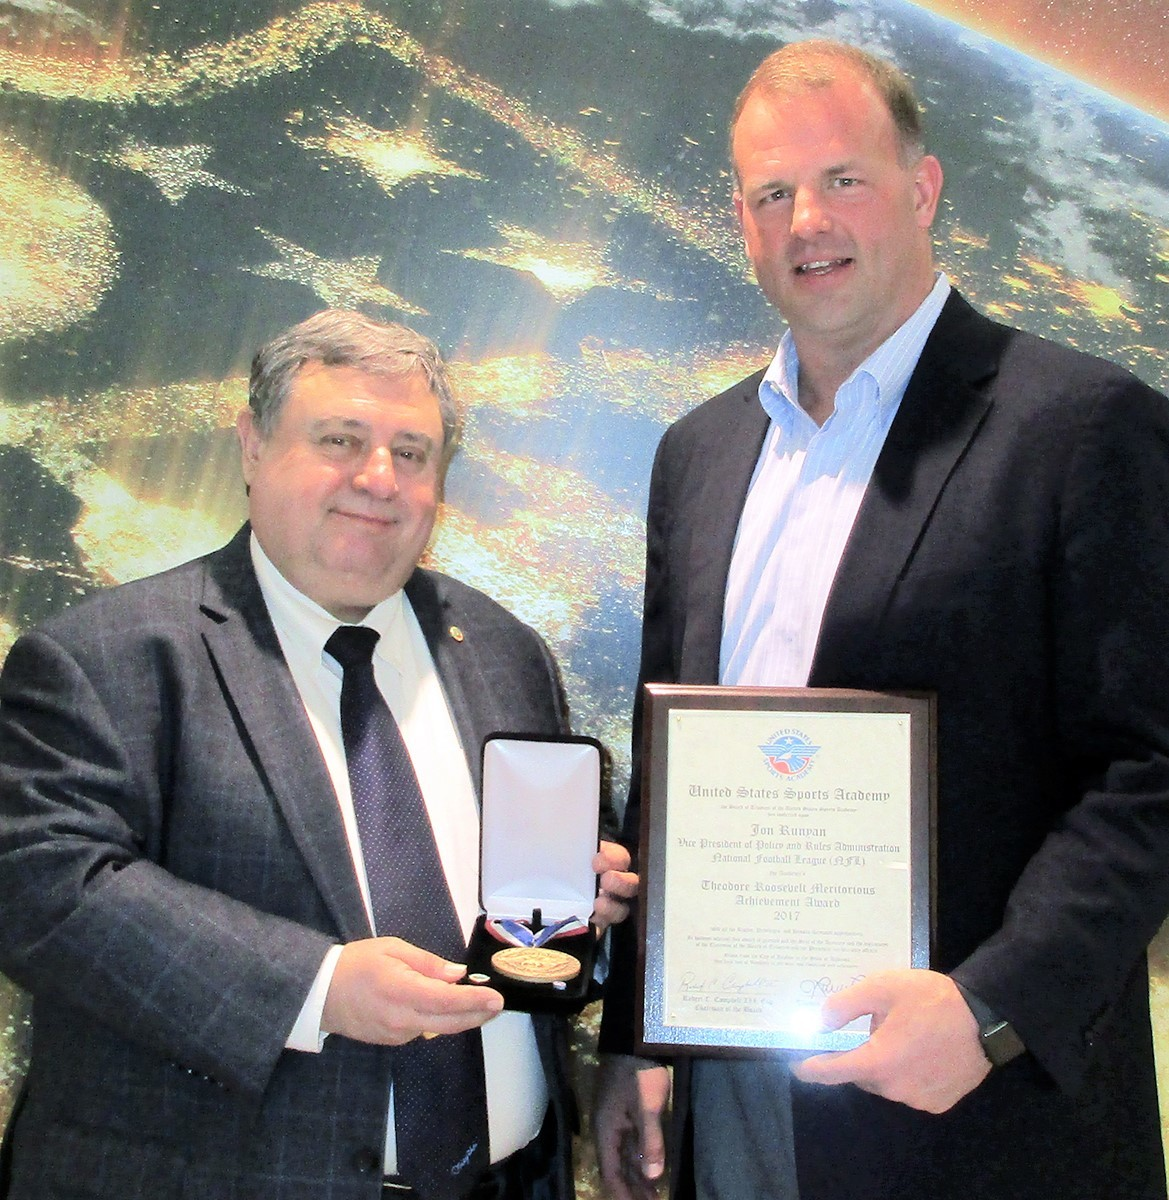 Former National Football League player and U.S. Congressman and current NFL Vice President of Football Operations Jon Runyan, right, recently was presented the United States Sports Academy's 2017 Theodore Roosevelt Meritorious Achievement Award by Academy President and CEO Dr. T.J. Rosandich at the NFL offices in New York City.